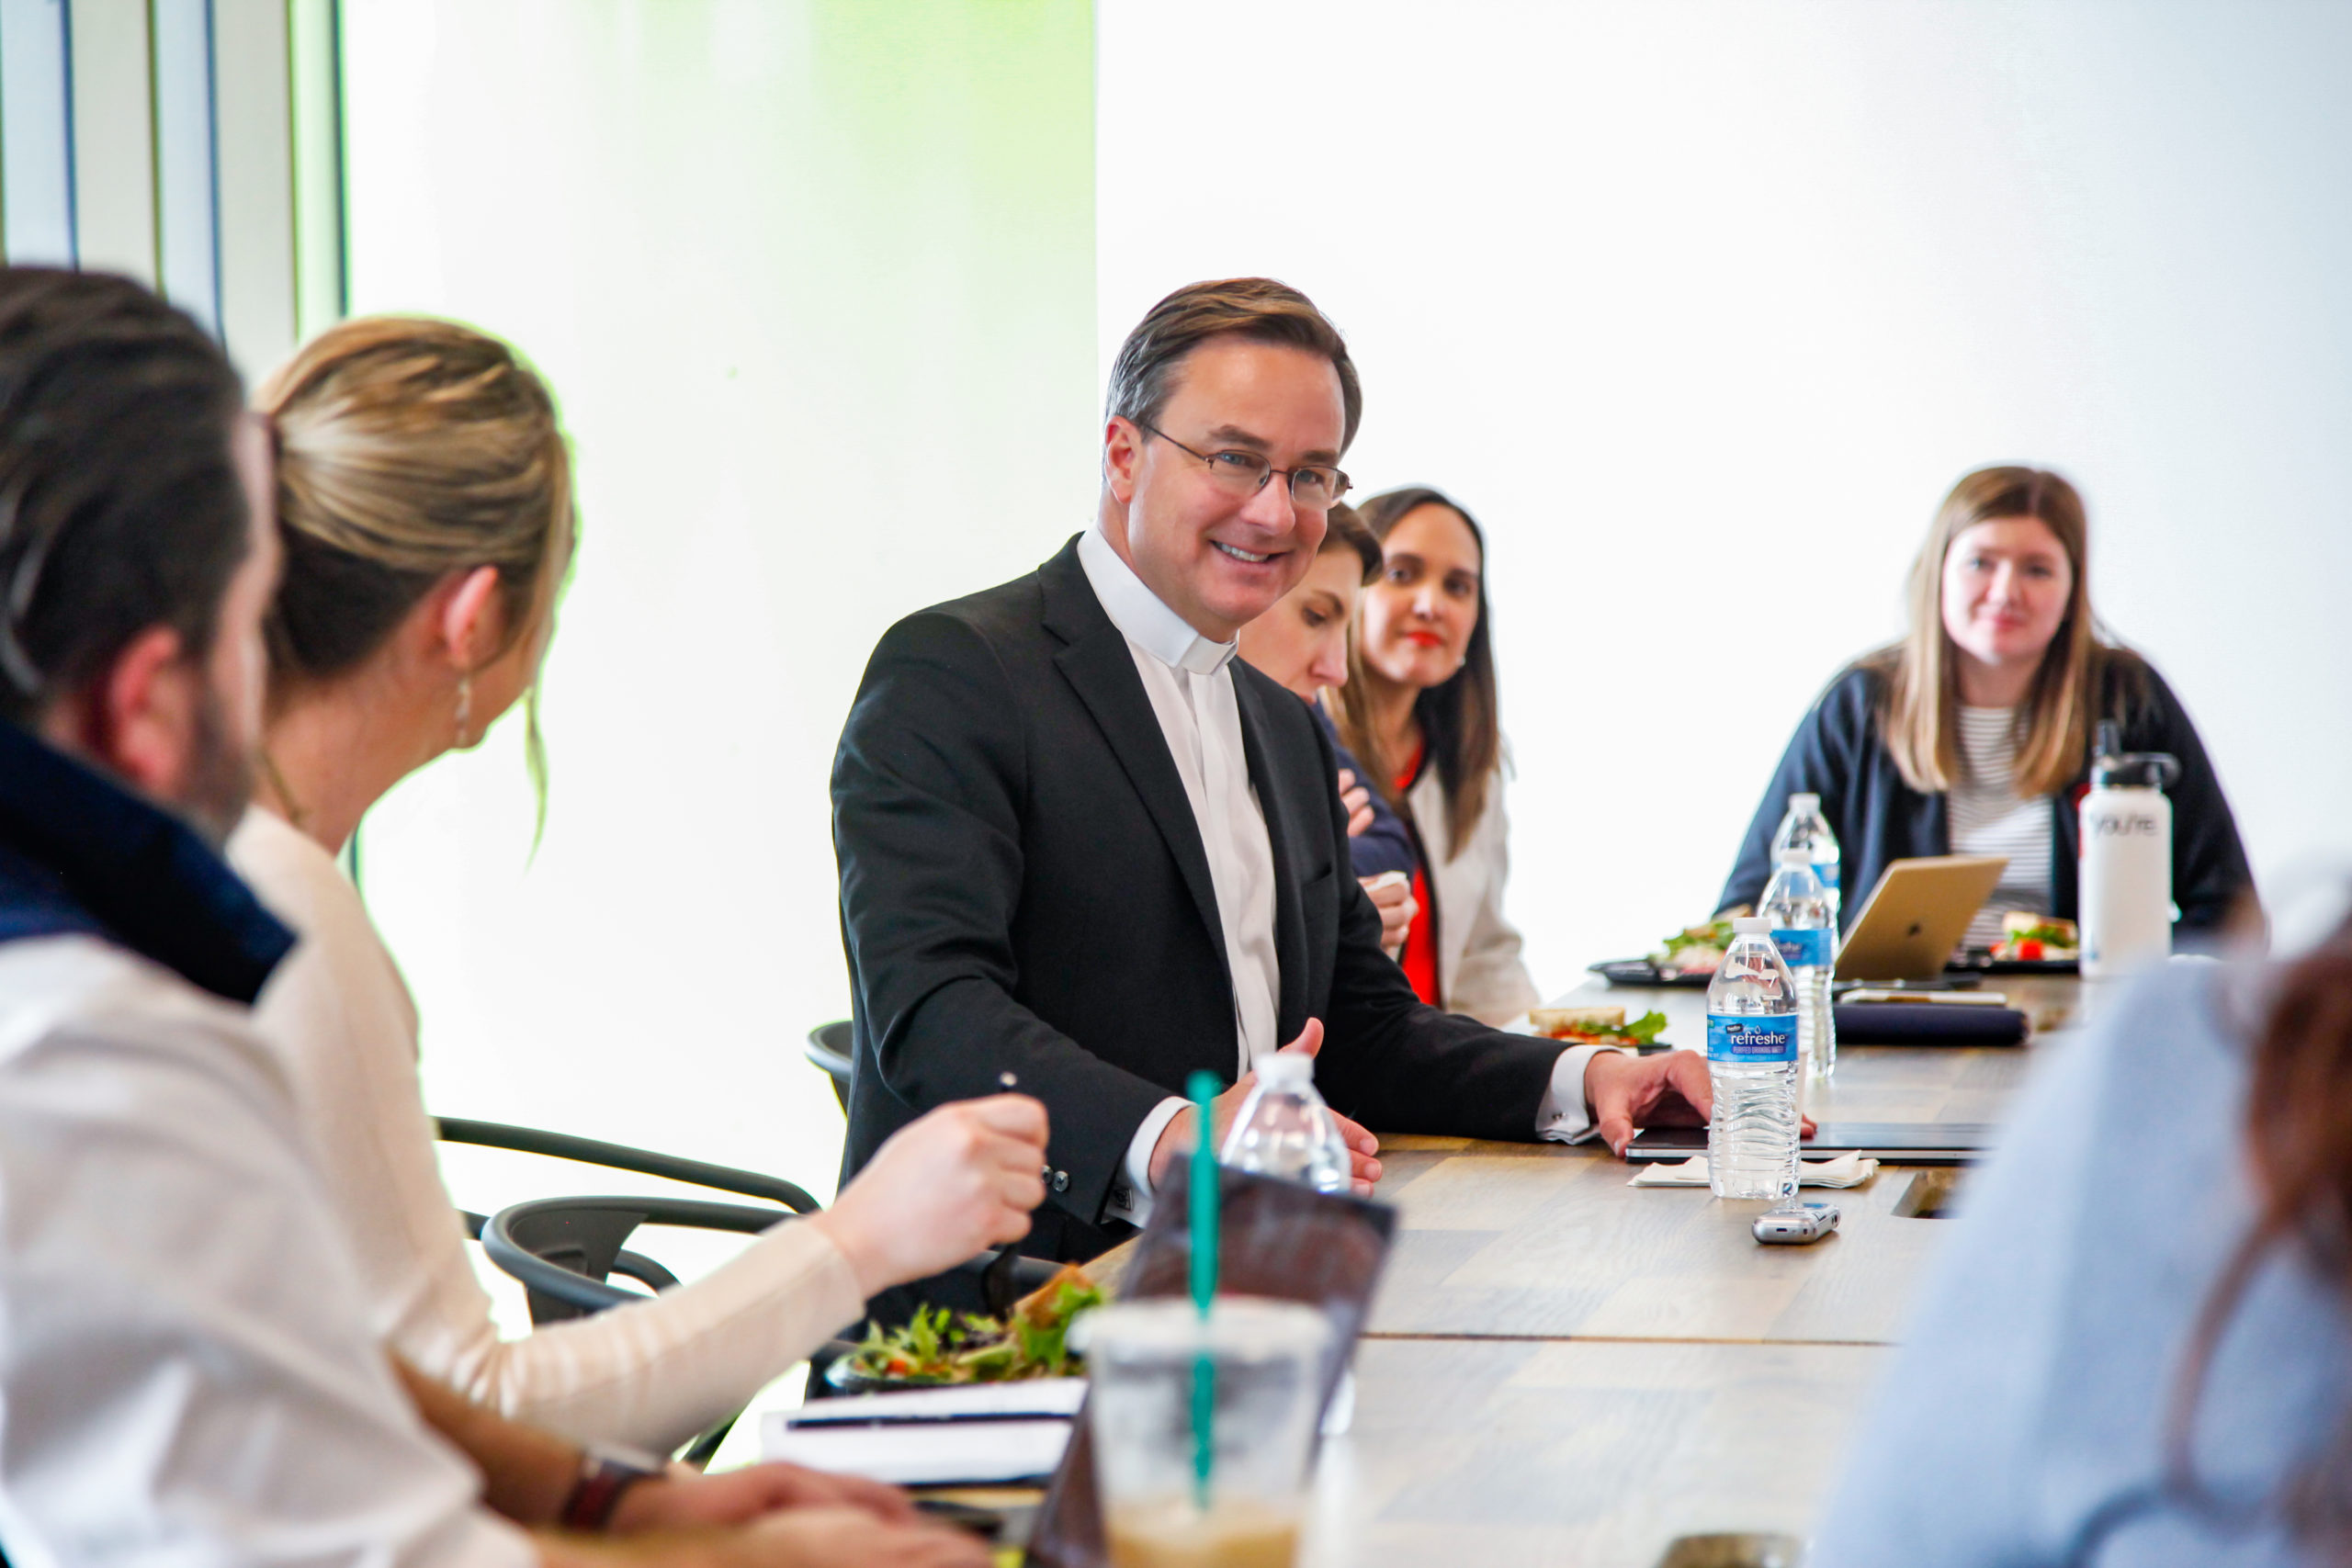 Creighton president Daniel Hendrickson sits at a conference room table speaking to members of the GPEC staff.